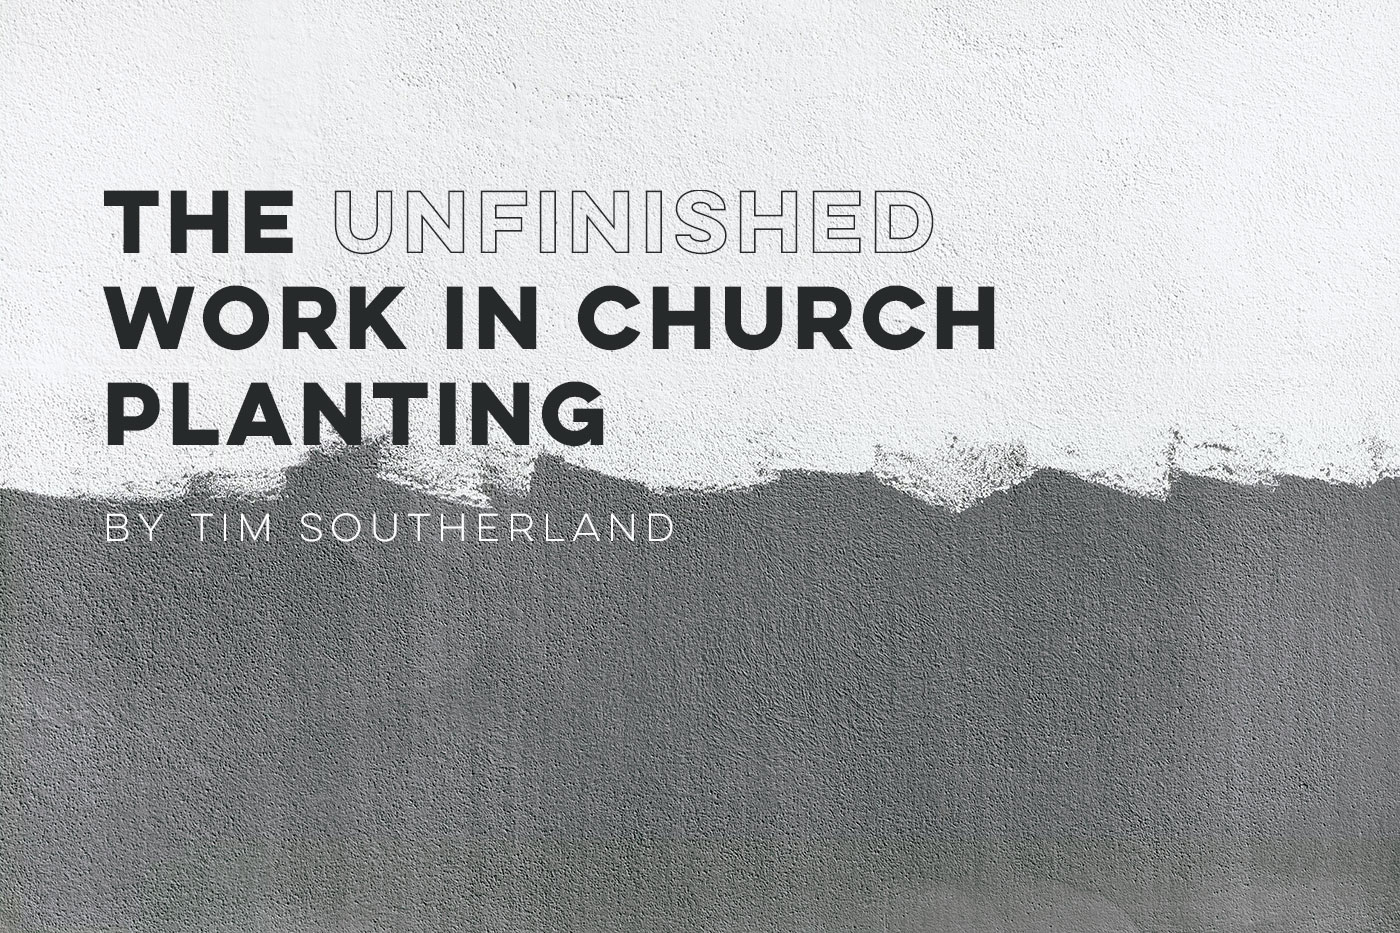 The Unfinished Work In Church Planting